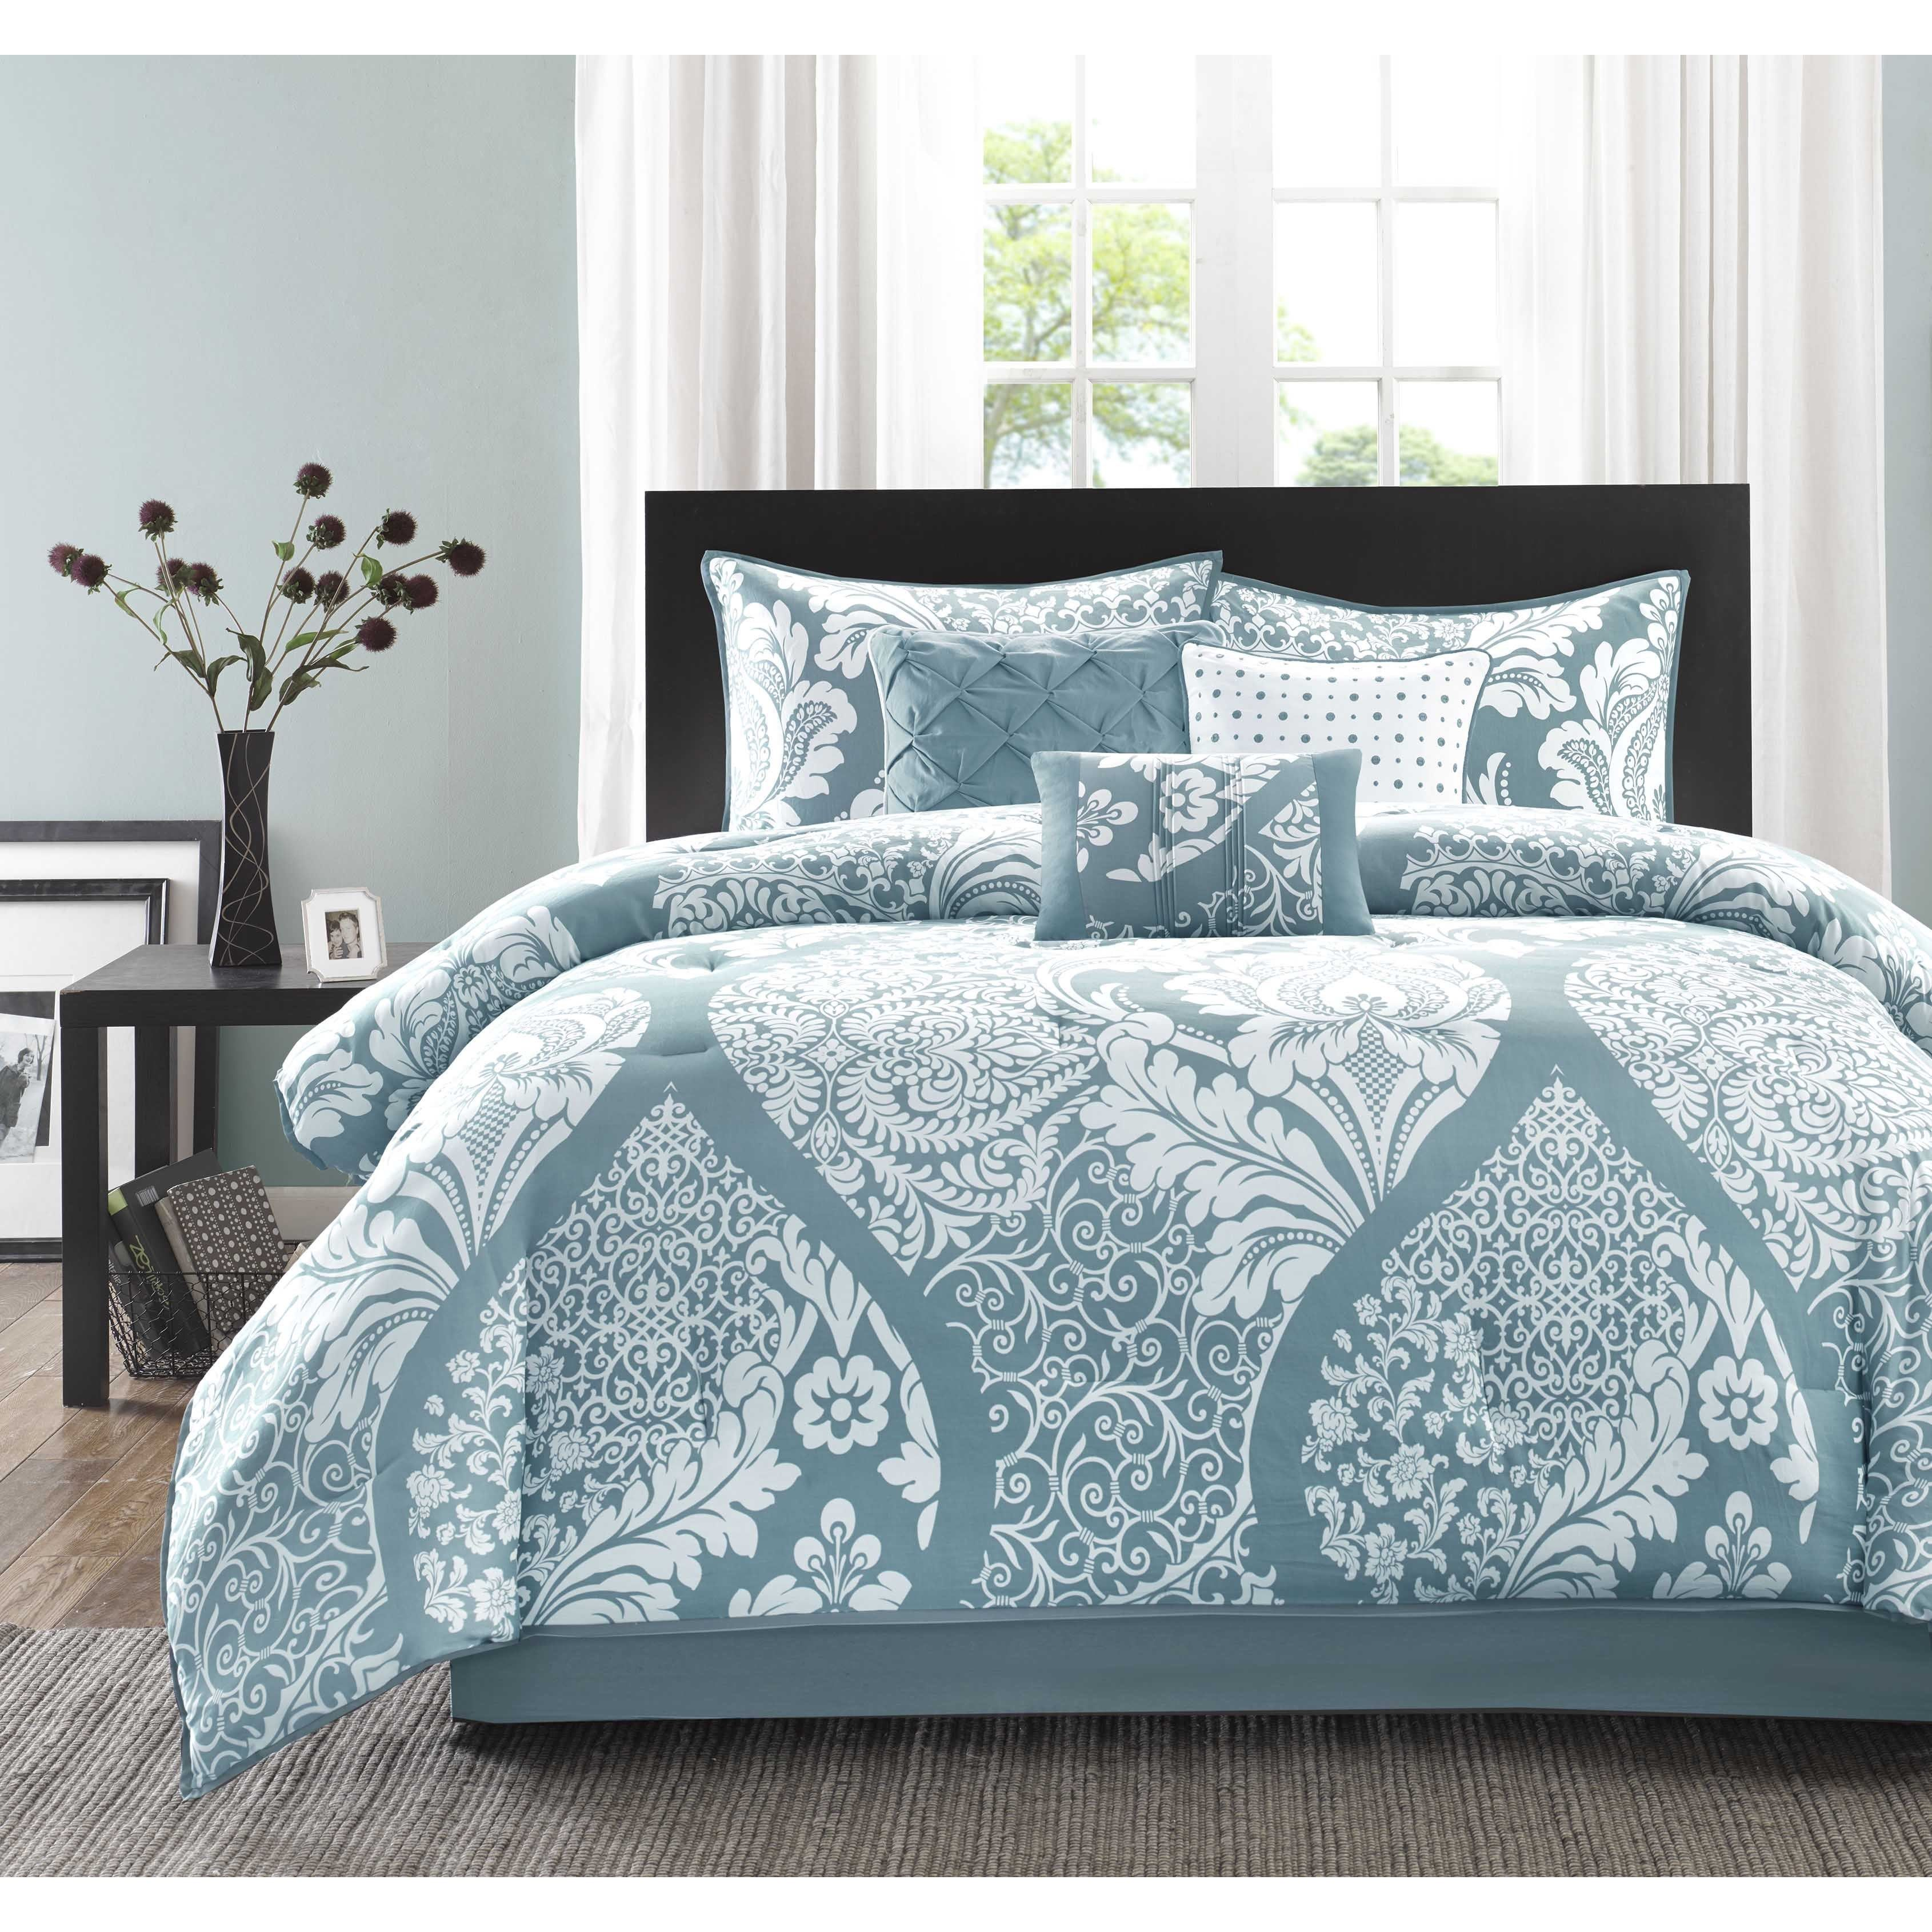 madison park franchesca 7 piece cotton printed comforter 12760 | 34a8bddfcf12760fcb43cae4c6dfb5cd